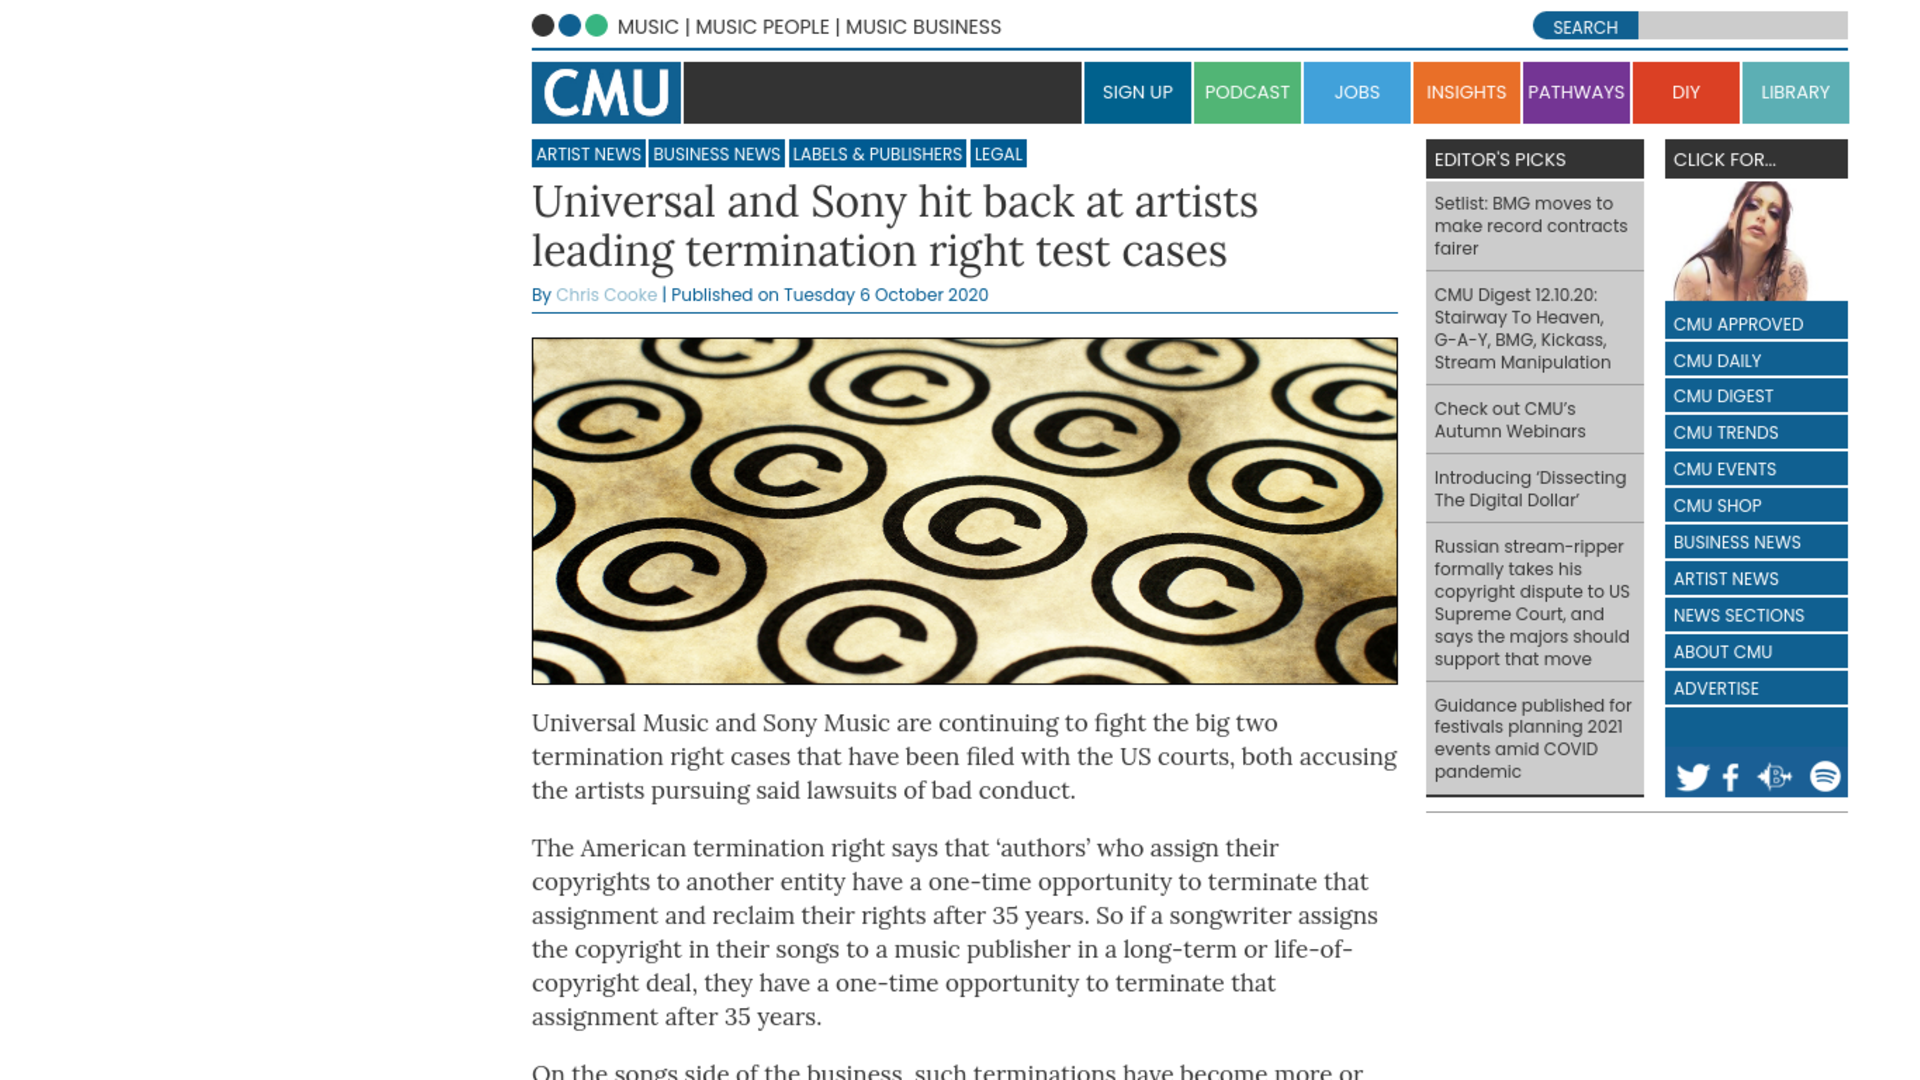 Fairness Rocks News Universal and Sony hit back at artists leading termination right test cases